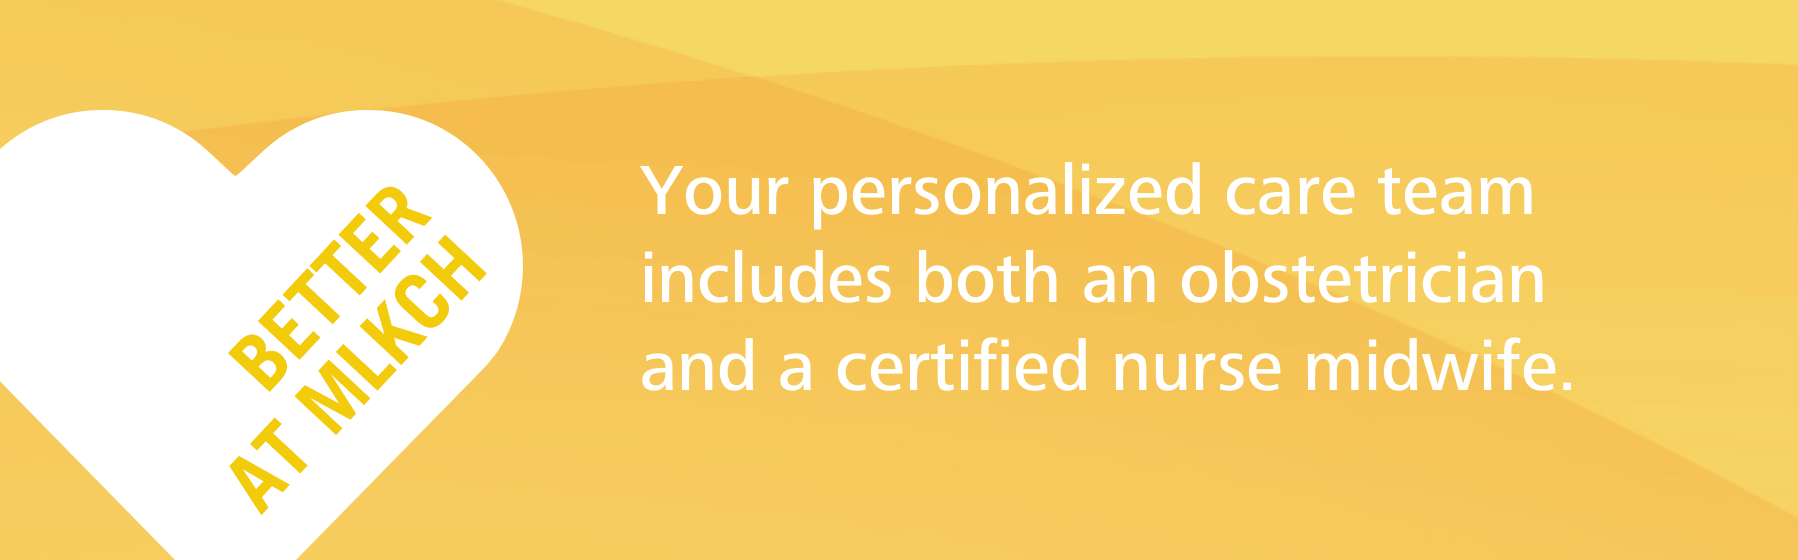 Yellow badge that reads Better at MLKCH. Your personalized care team includes both an obstetrician and a certified nurse midwife.